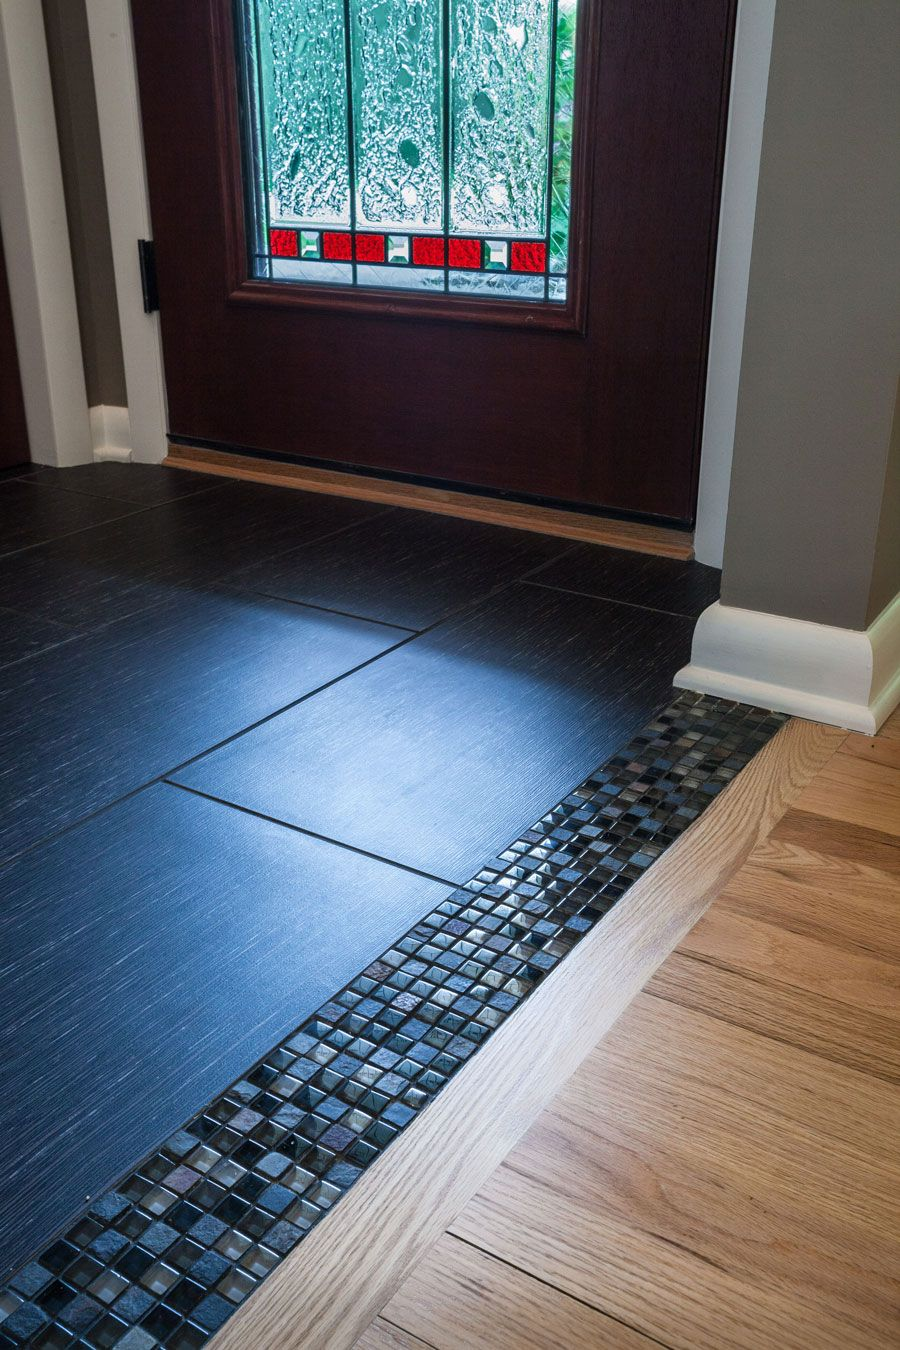 Transitioning From A Wood Floor Into Tile Foyer Can Sometimes Be Too Blunt With This Project We Added Gl Mosaic Allowing An Awesome Transition